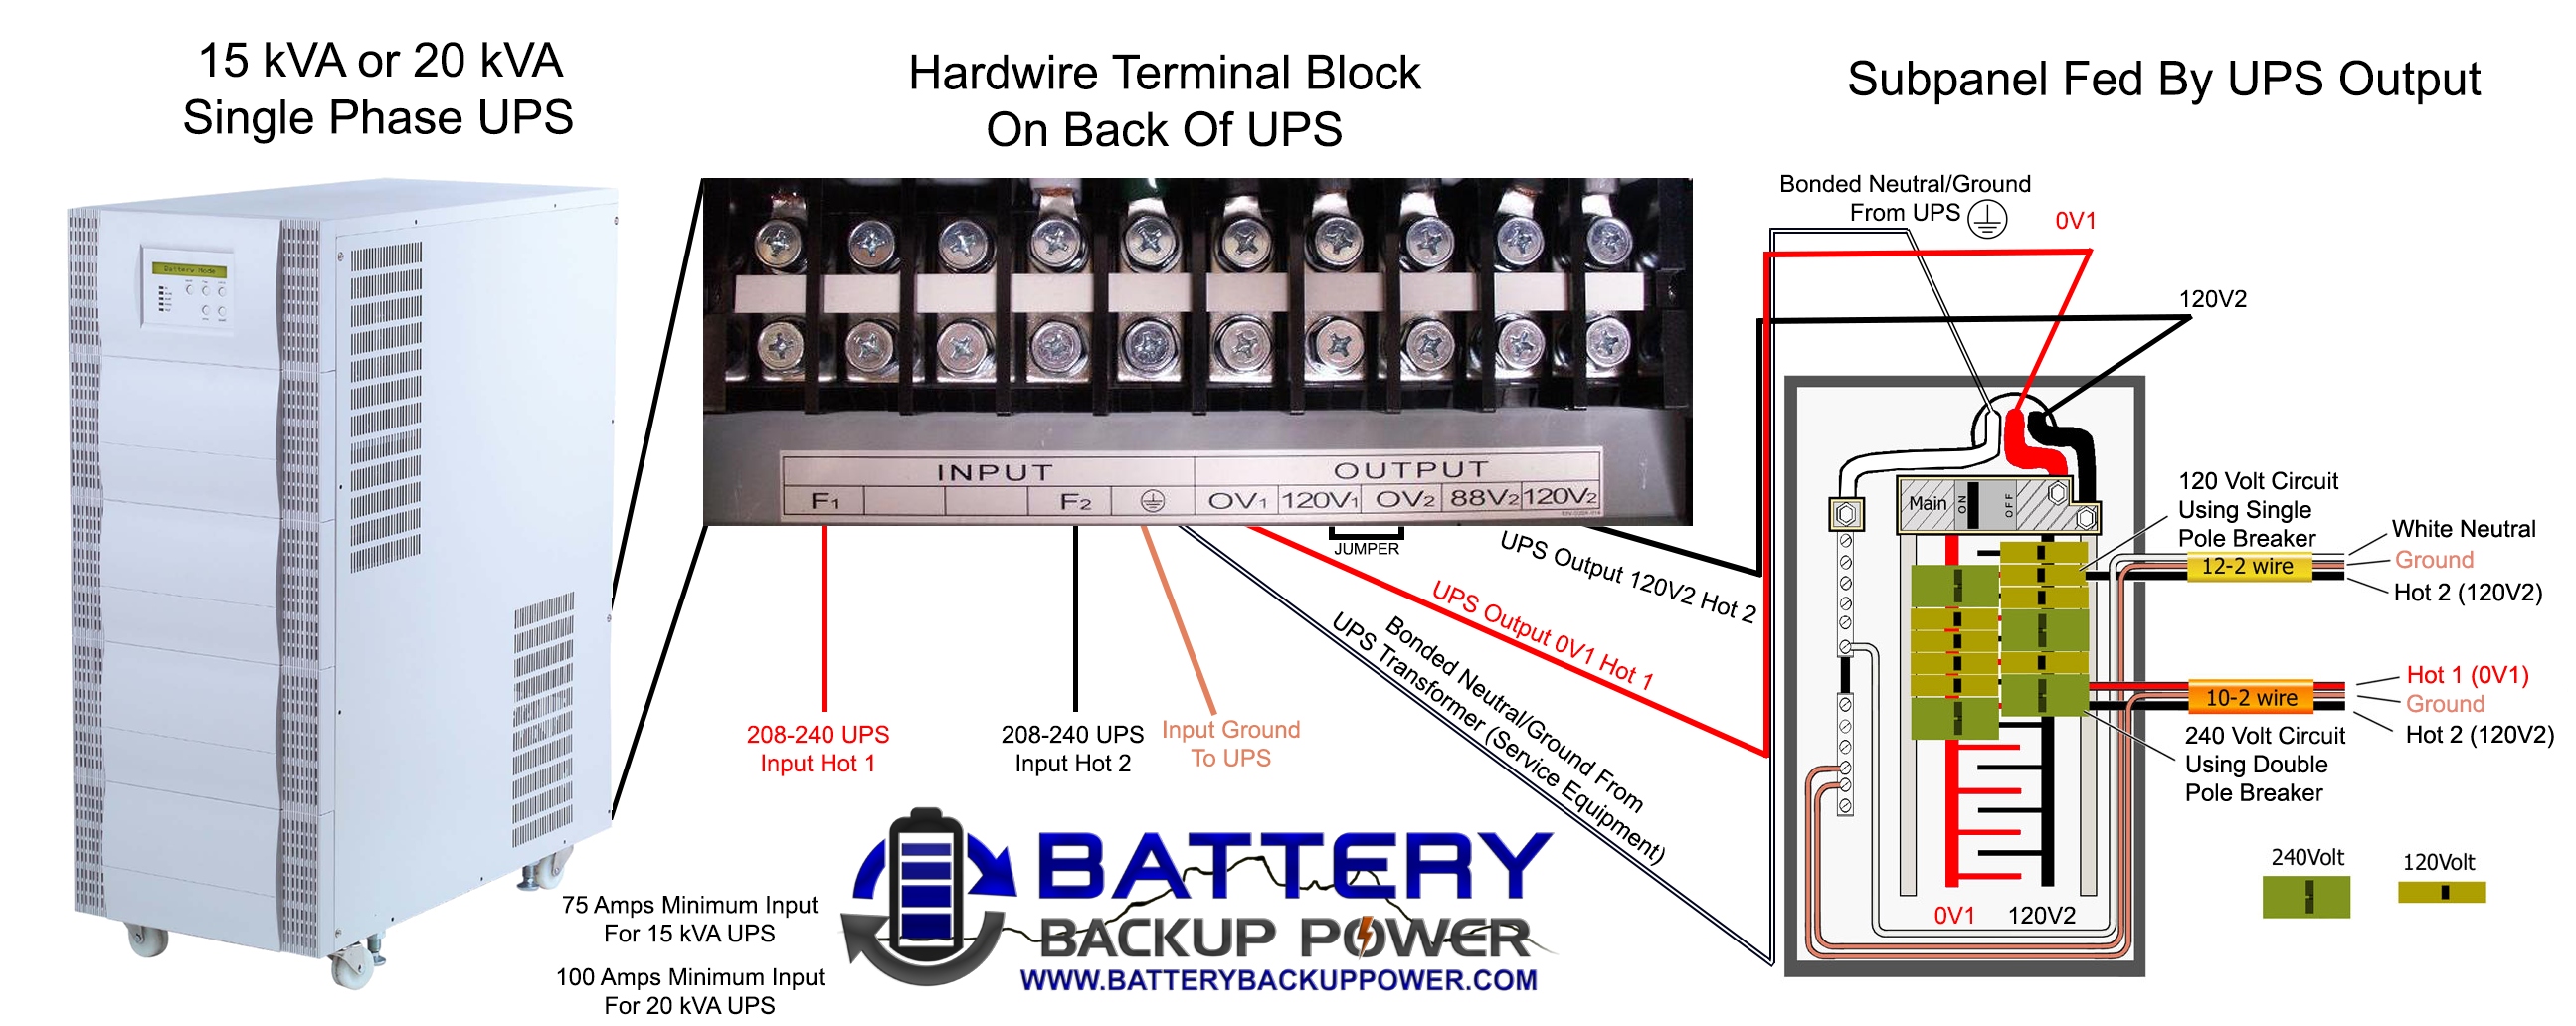 medium resolution of how to wire a 15 kva or 20 kva ups to a subpanel to provide real time backup power to all circuits connected to the subpanel this is an example